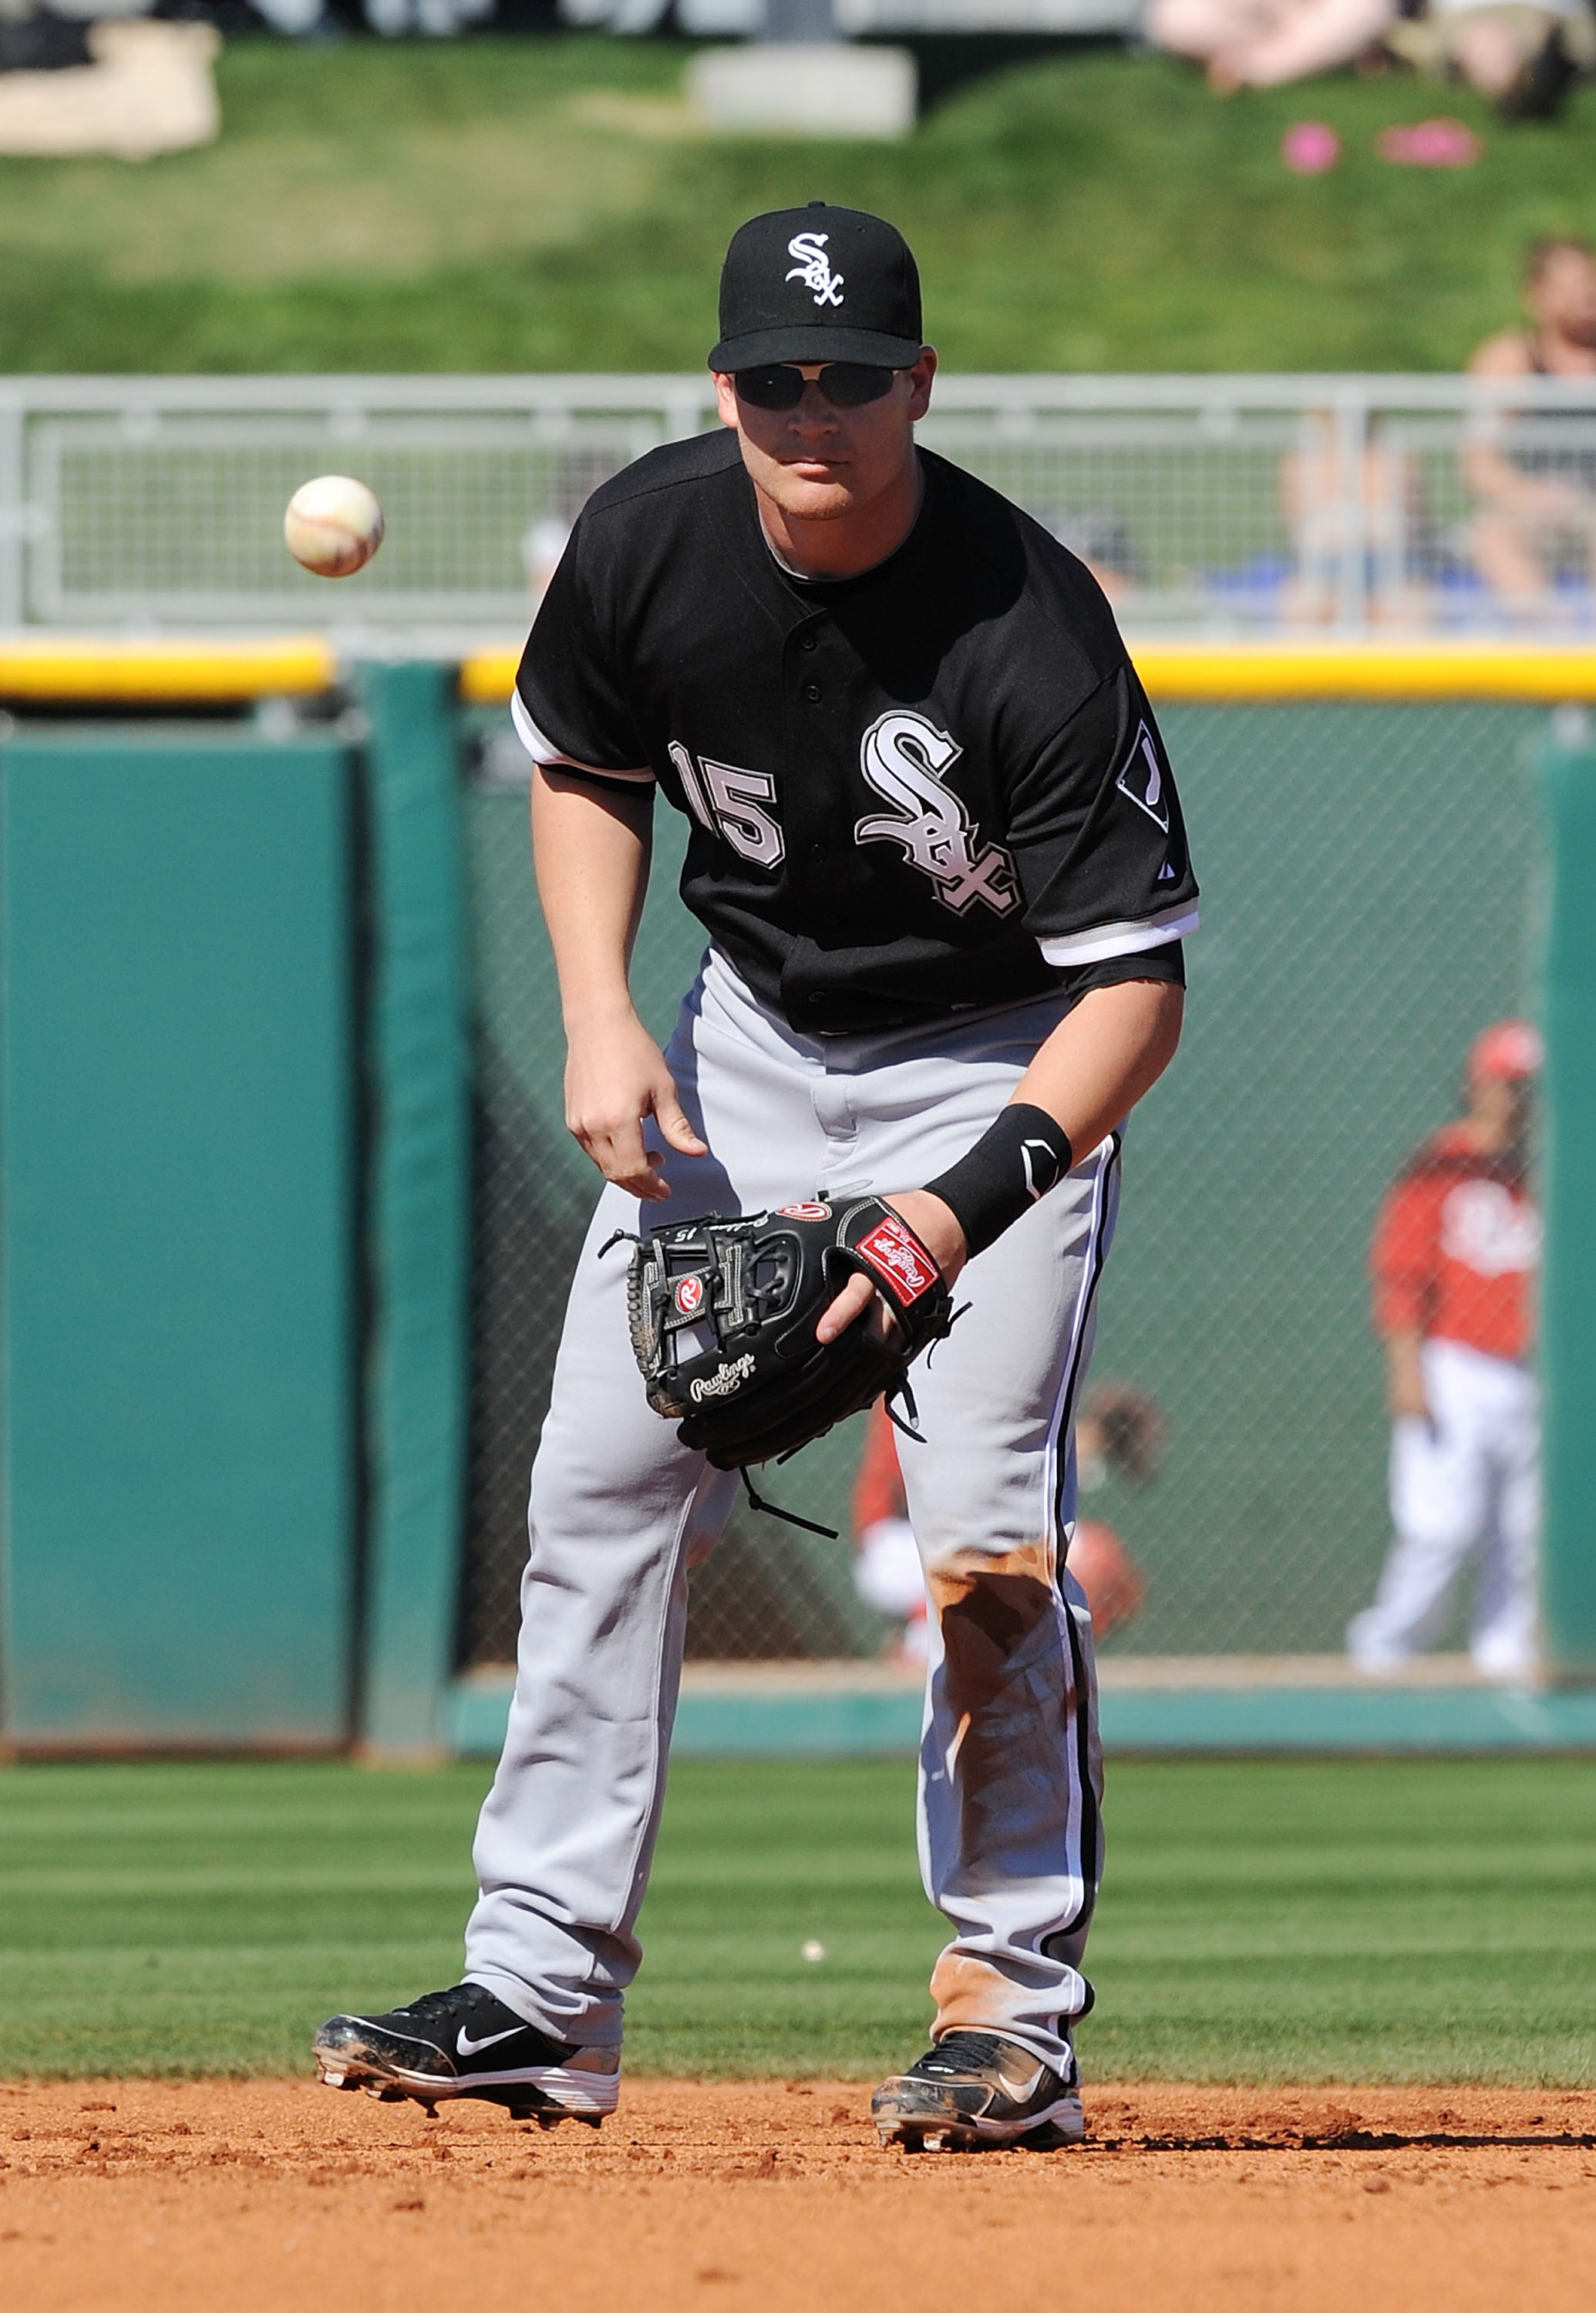 GOODYEAR, AZ - MARCH 02:  Gordon Beckham #15 of the Chicago White Sox fields a ground ball against the Cincinnati Reds during a spring training game at Goodyear Ballpark on March 2, 2011 in Goodyear, Arizona.  (Photo by Norm Hall/Getty Images)